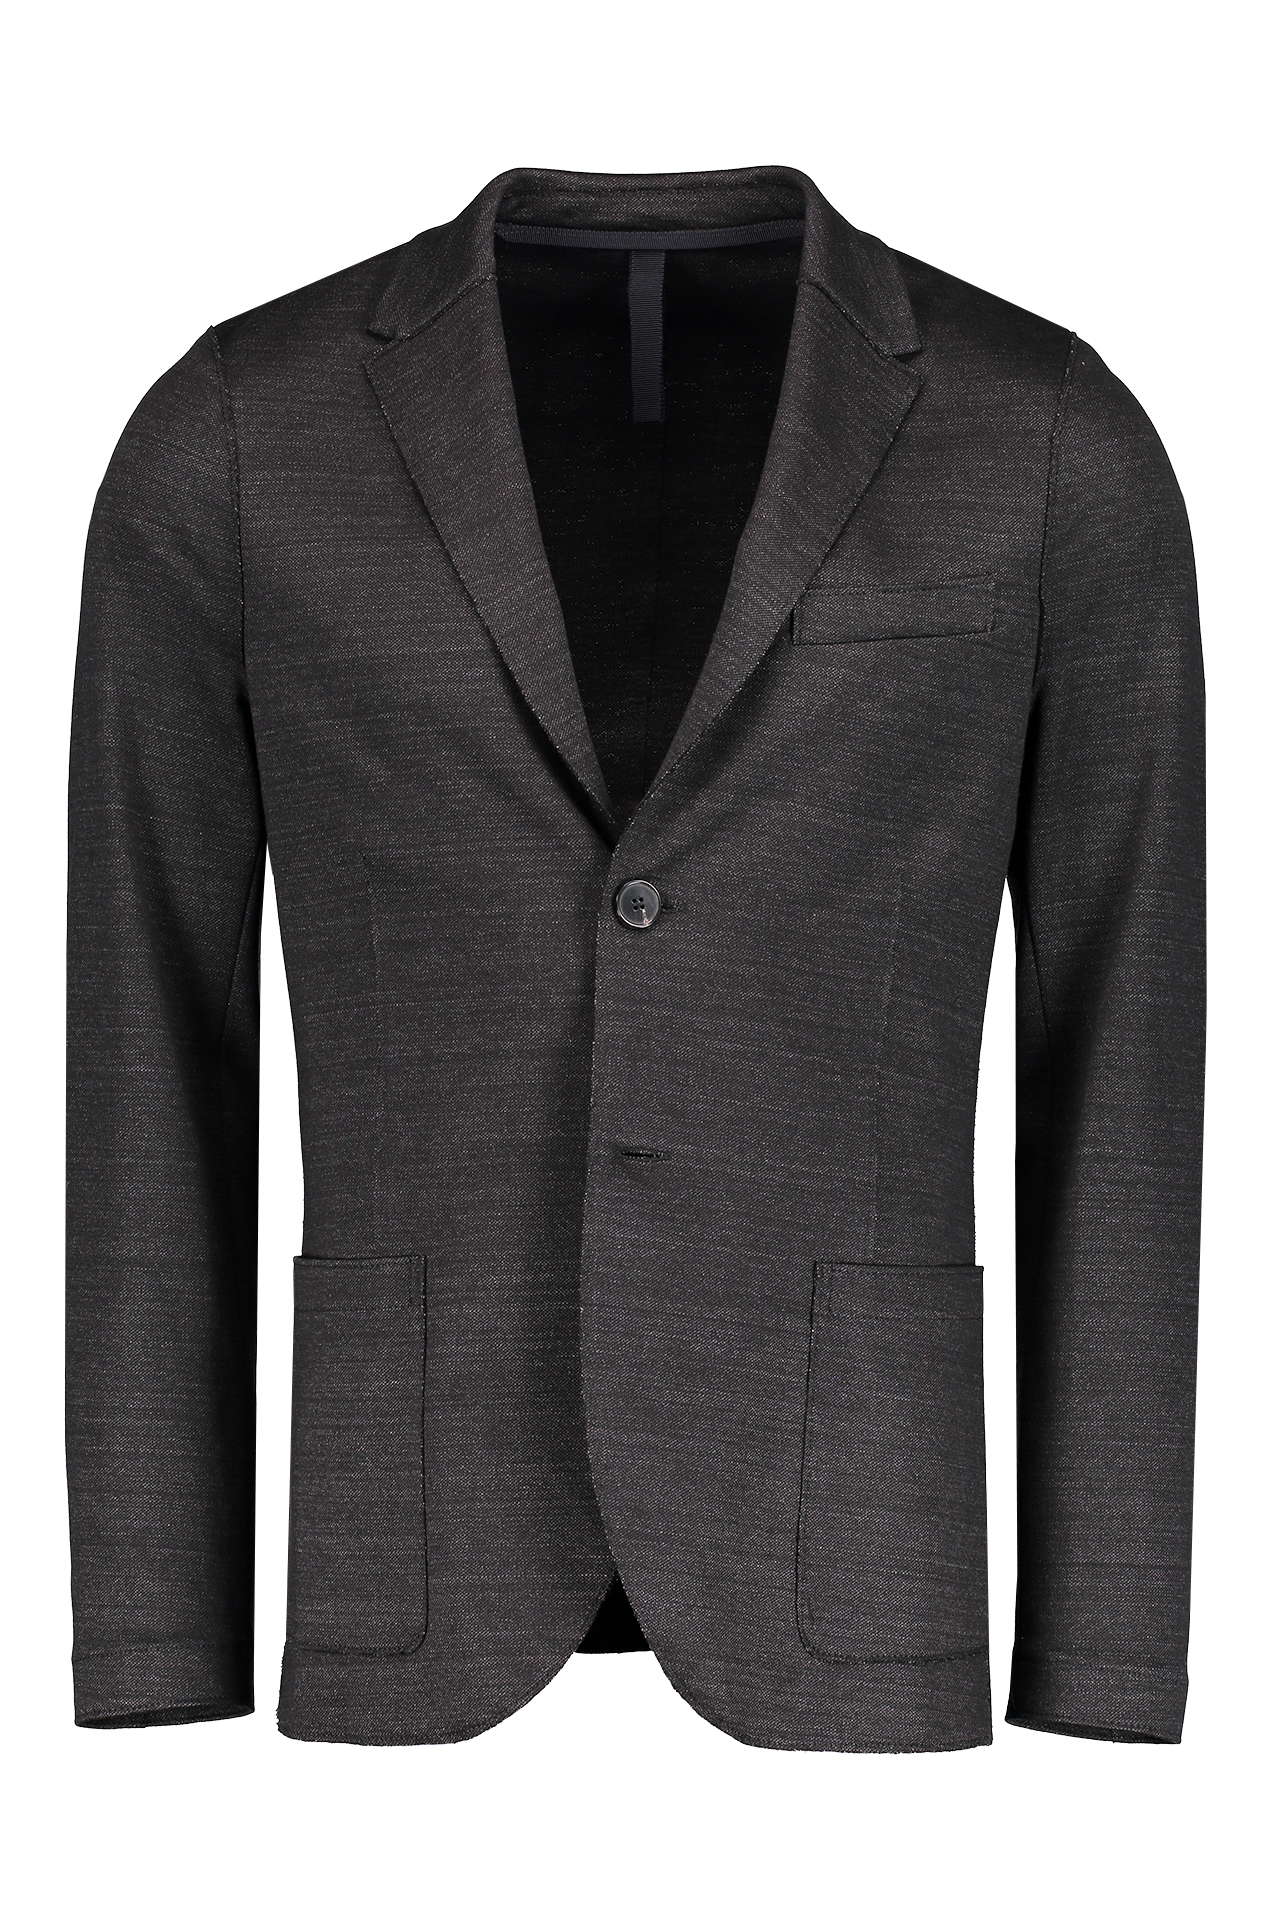 Front image of Harris Wharf London Men's Two Button Blazer Linen Jersey